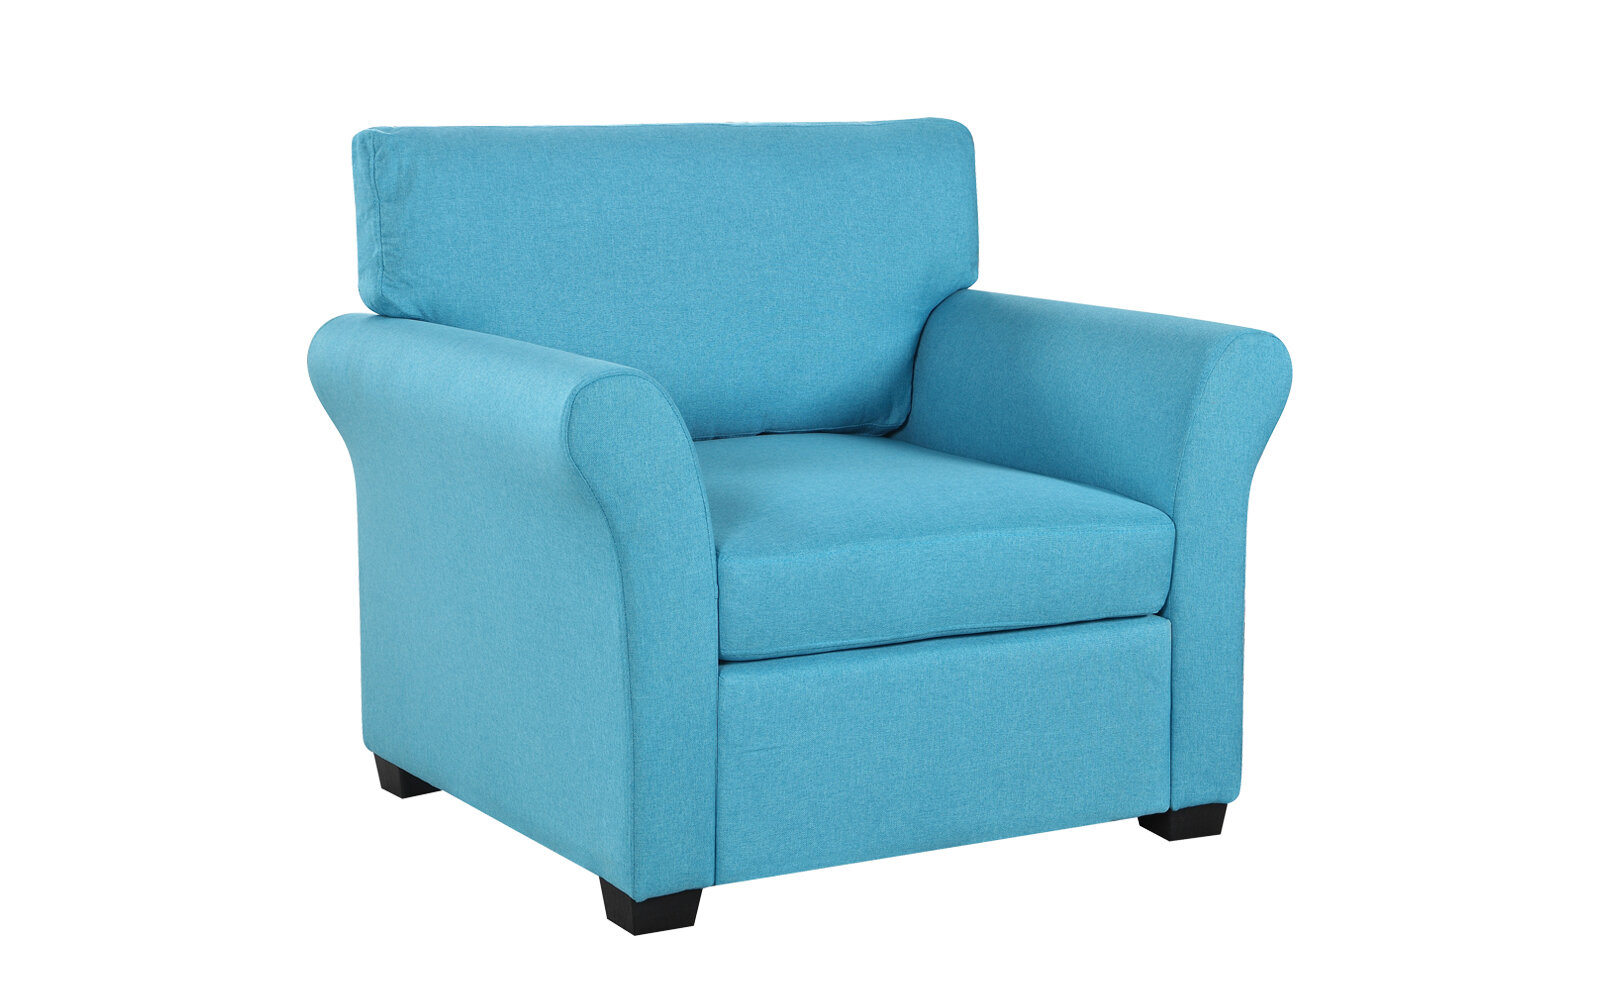 Oglesby Armchair Pertaining To Oglesby Armchairs (View 2 of 15)